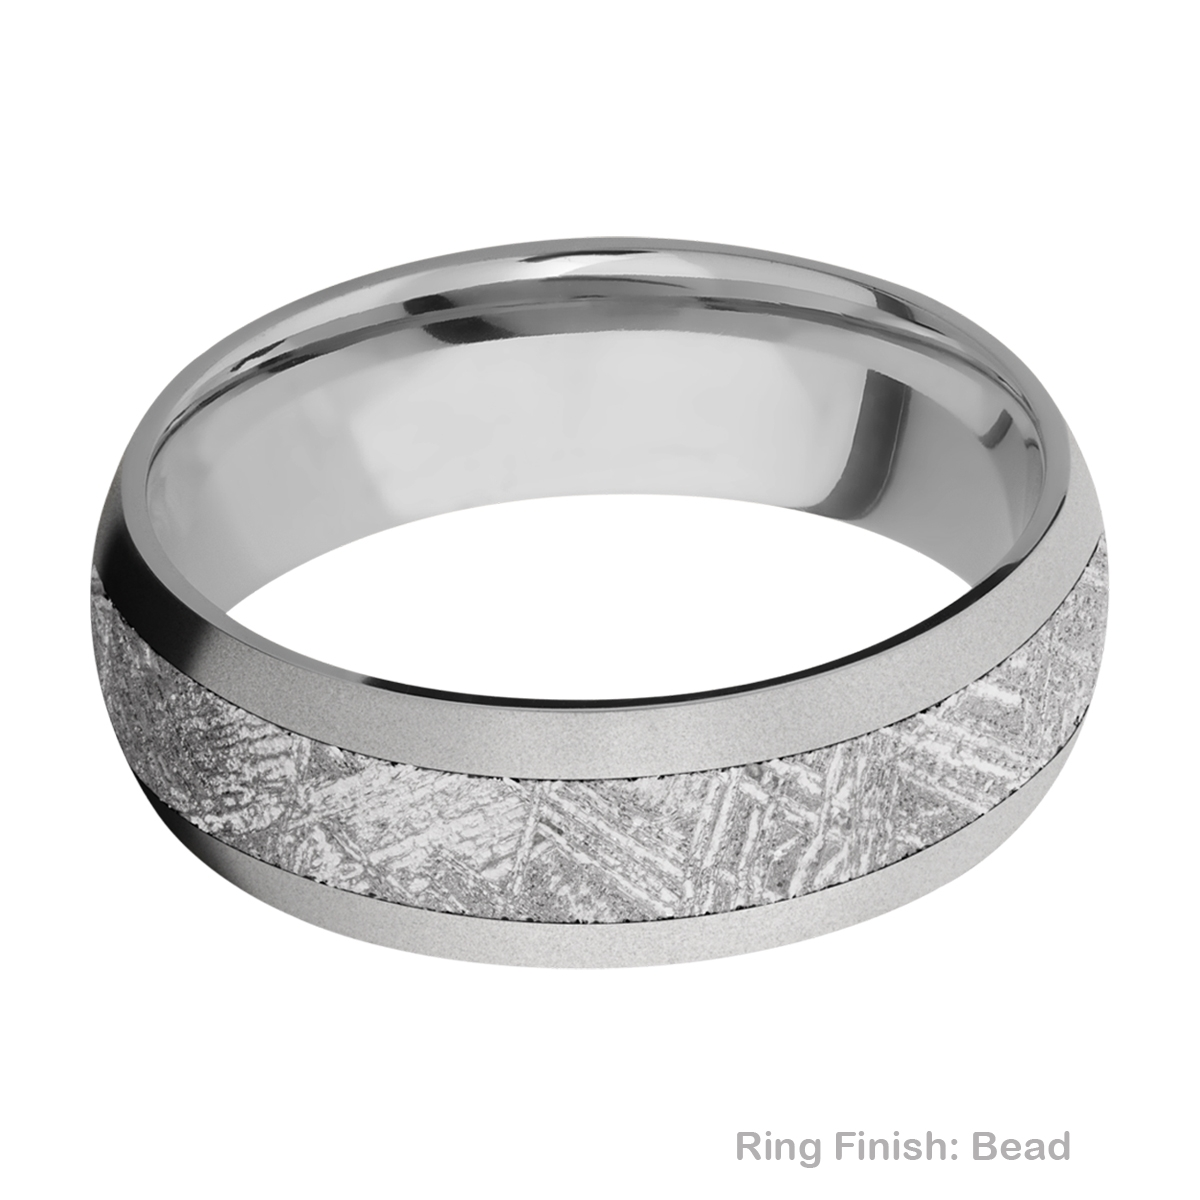 Lashbrook 7D14/METEORITE Titanium Wedding Ring or Band Alternative View 2